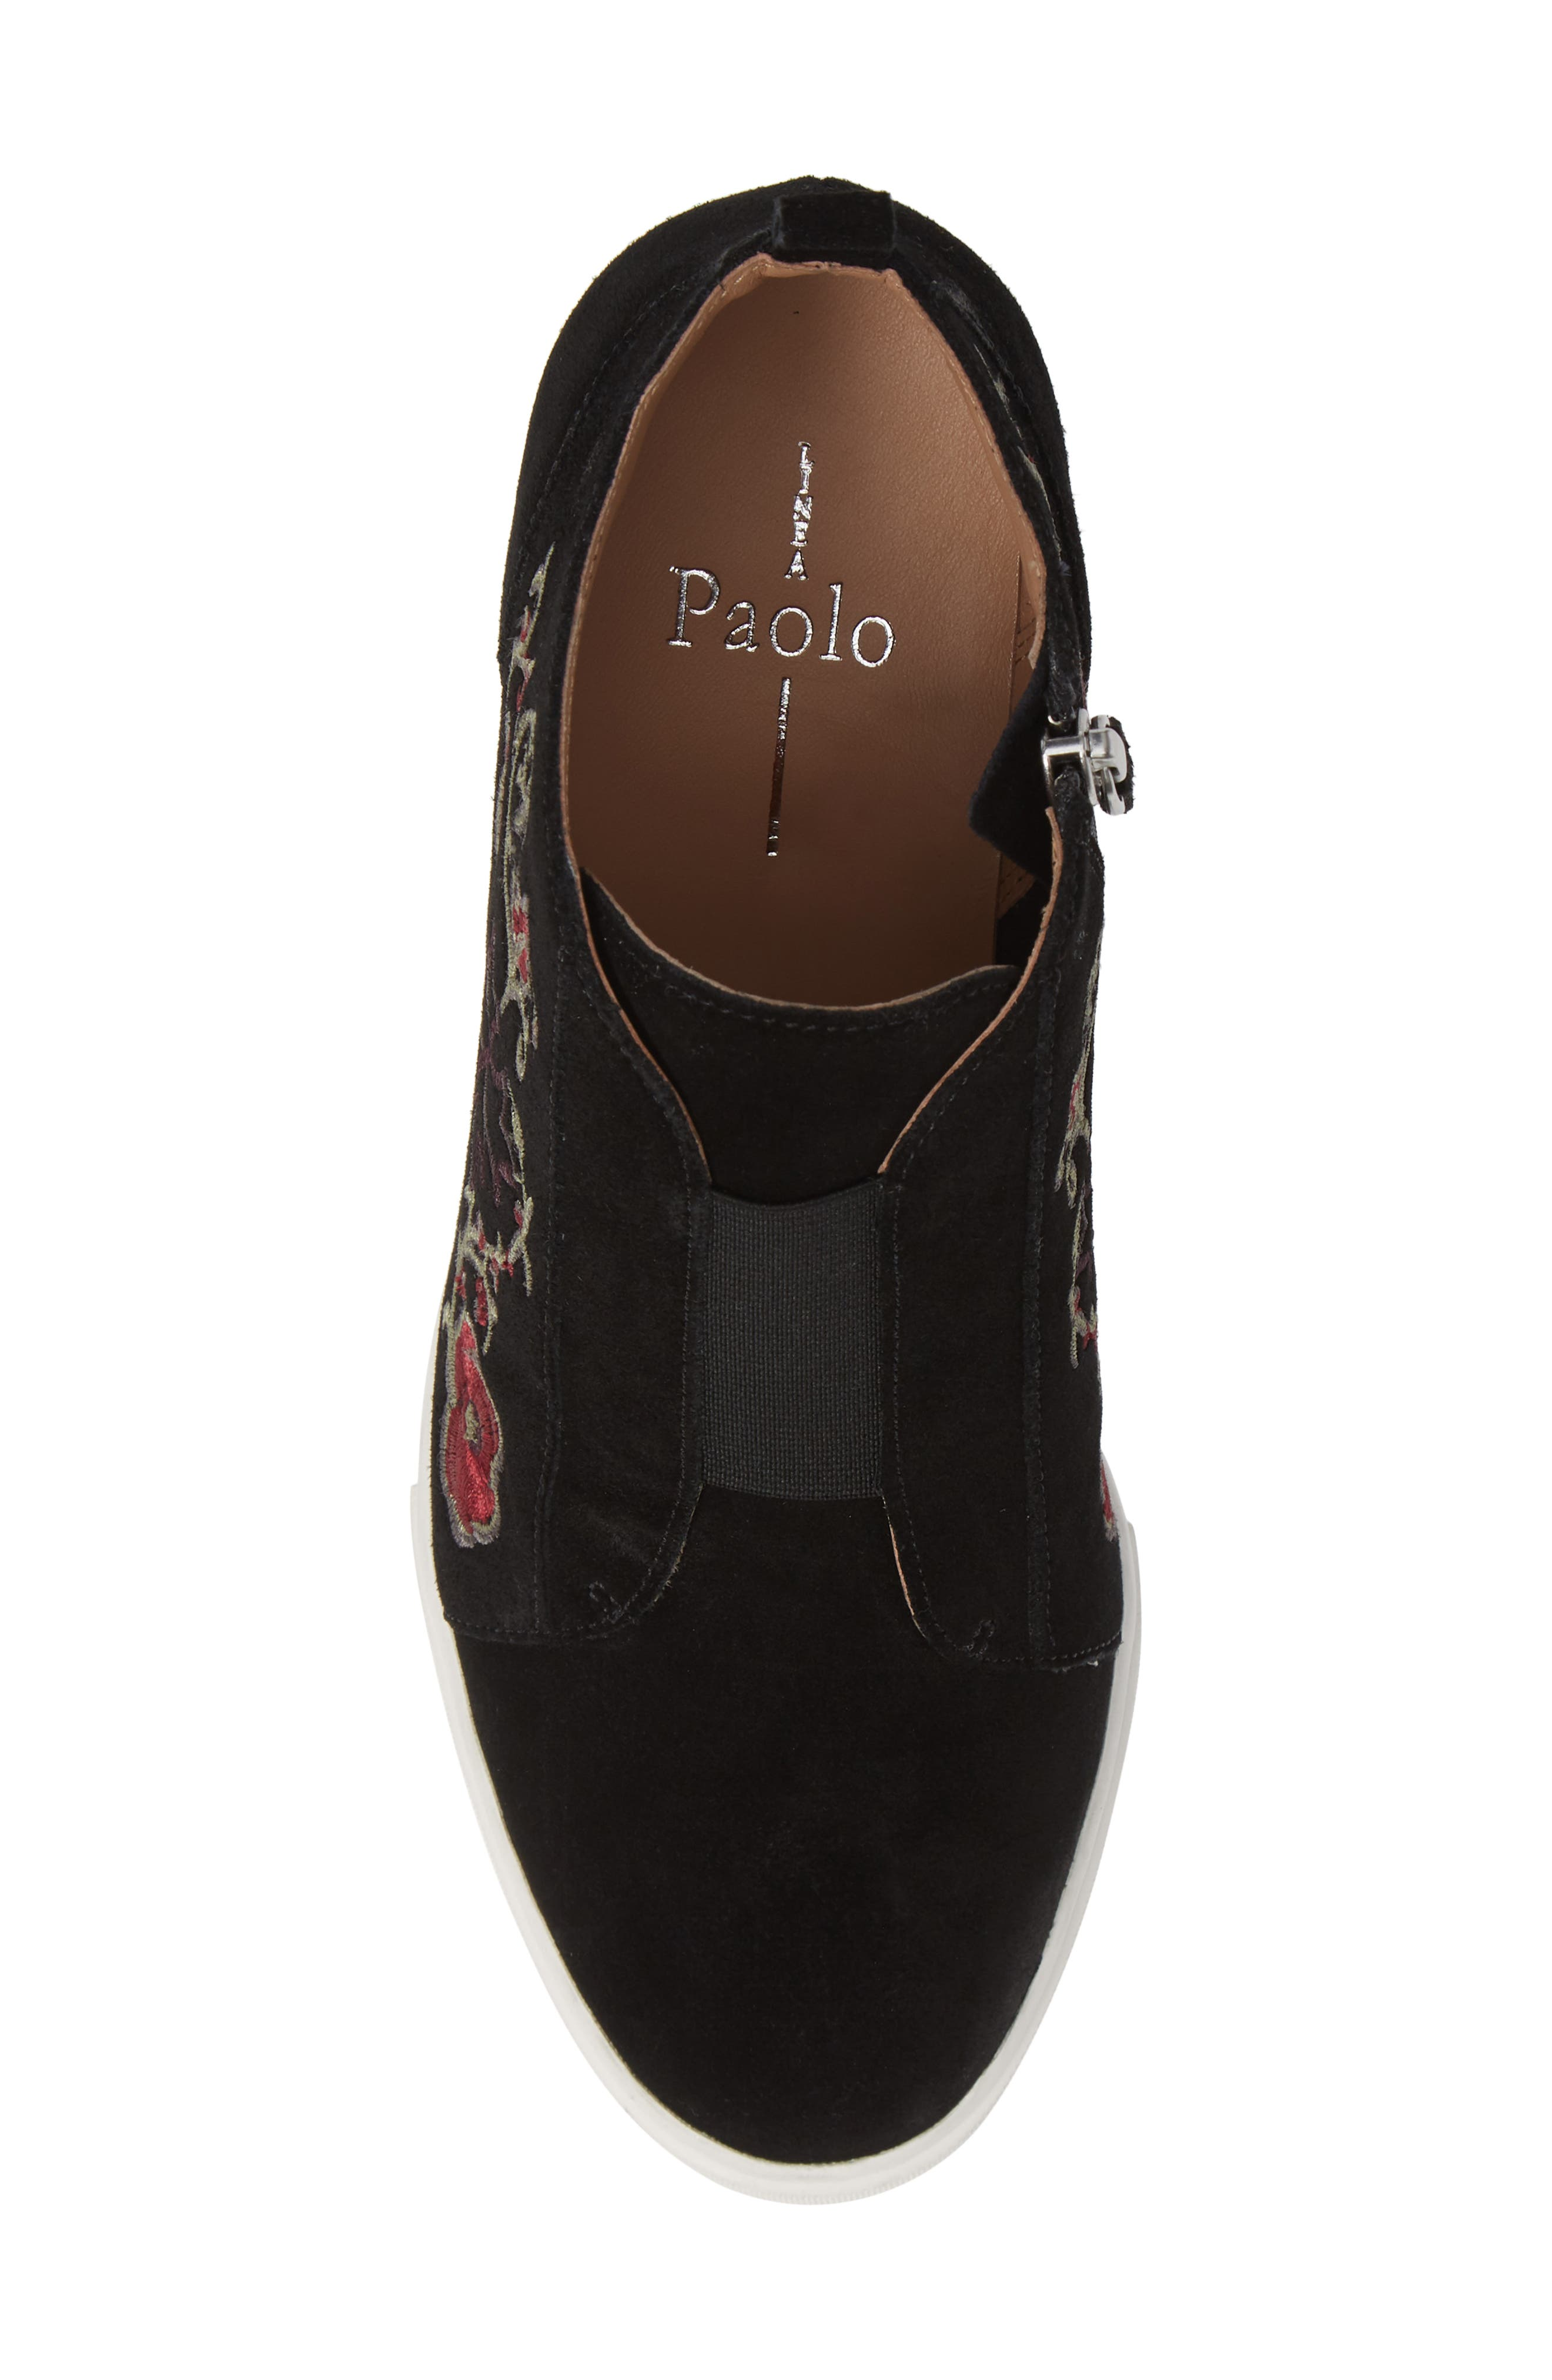 LINEA PAOLO, Felicia II Wedge Bootie, Alternate thumbnail 5, color, BLACK/ BLACK EMBROIDERY SUEDE